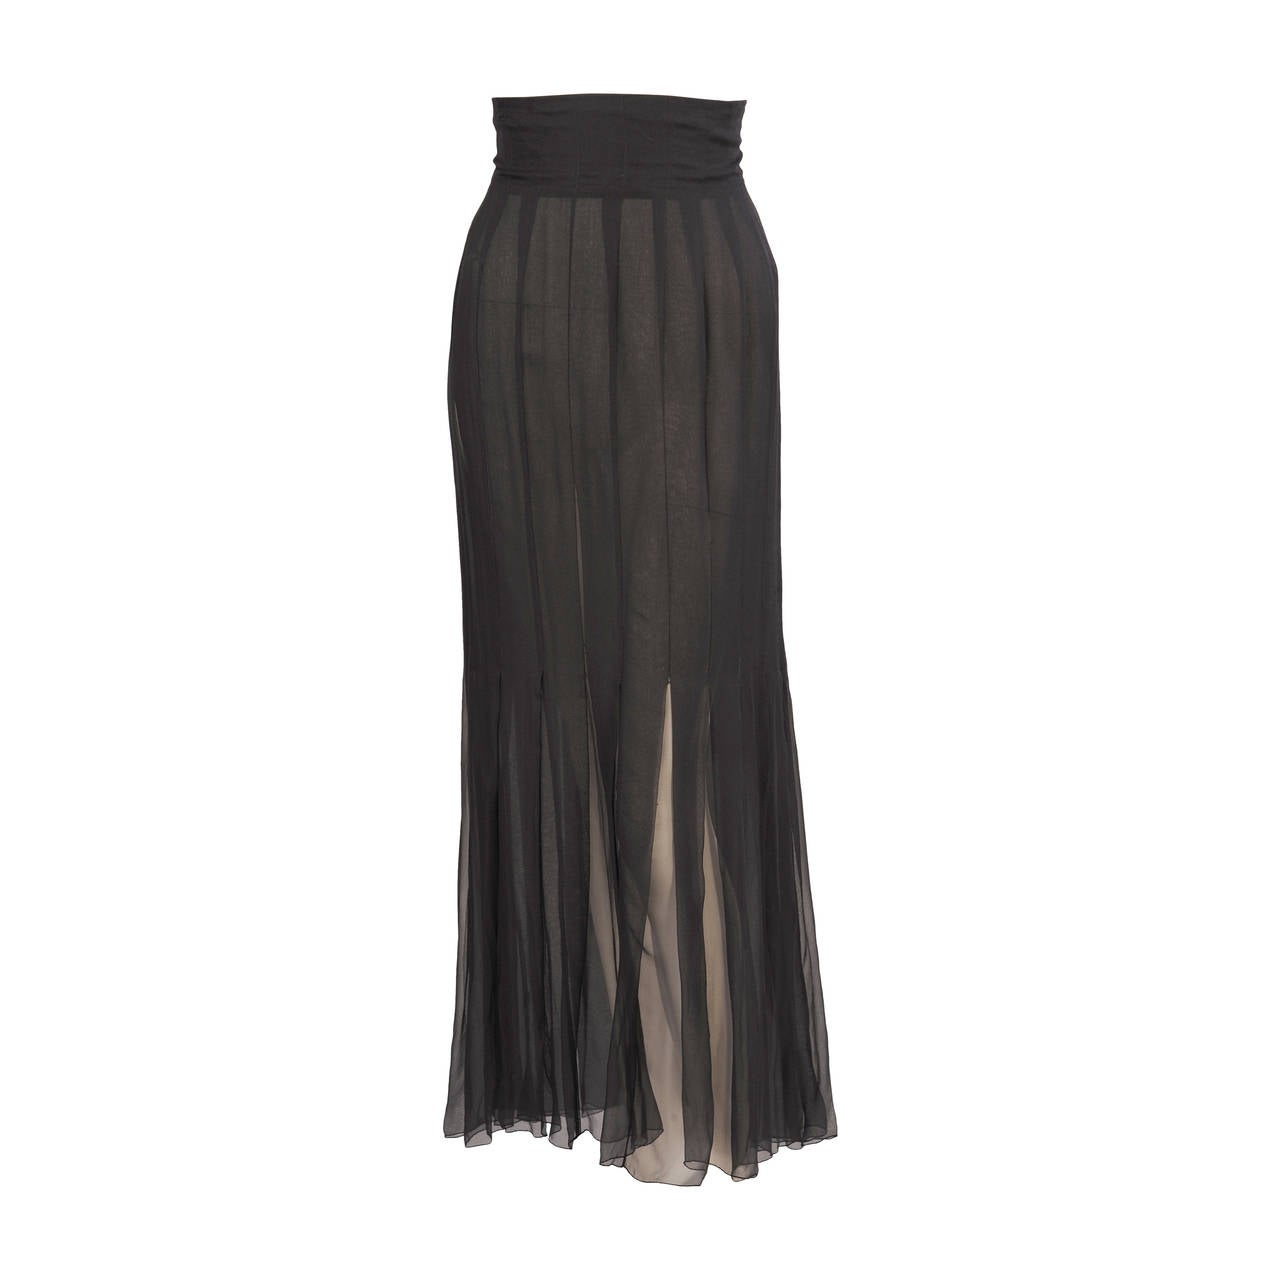 Chanel Haute Couture Black Silk Chiffon Skirt